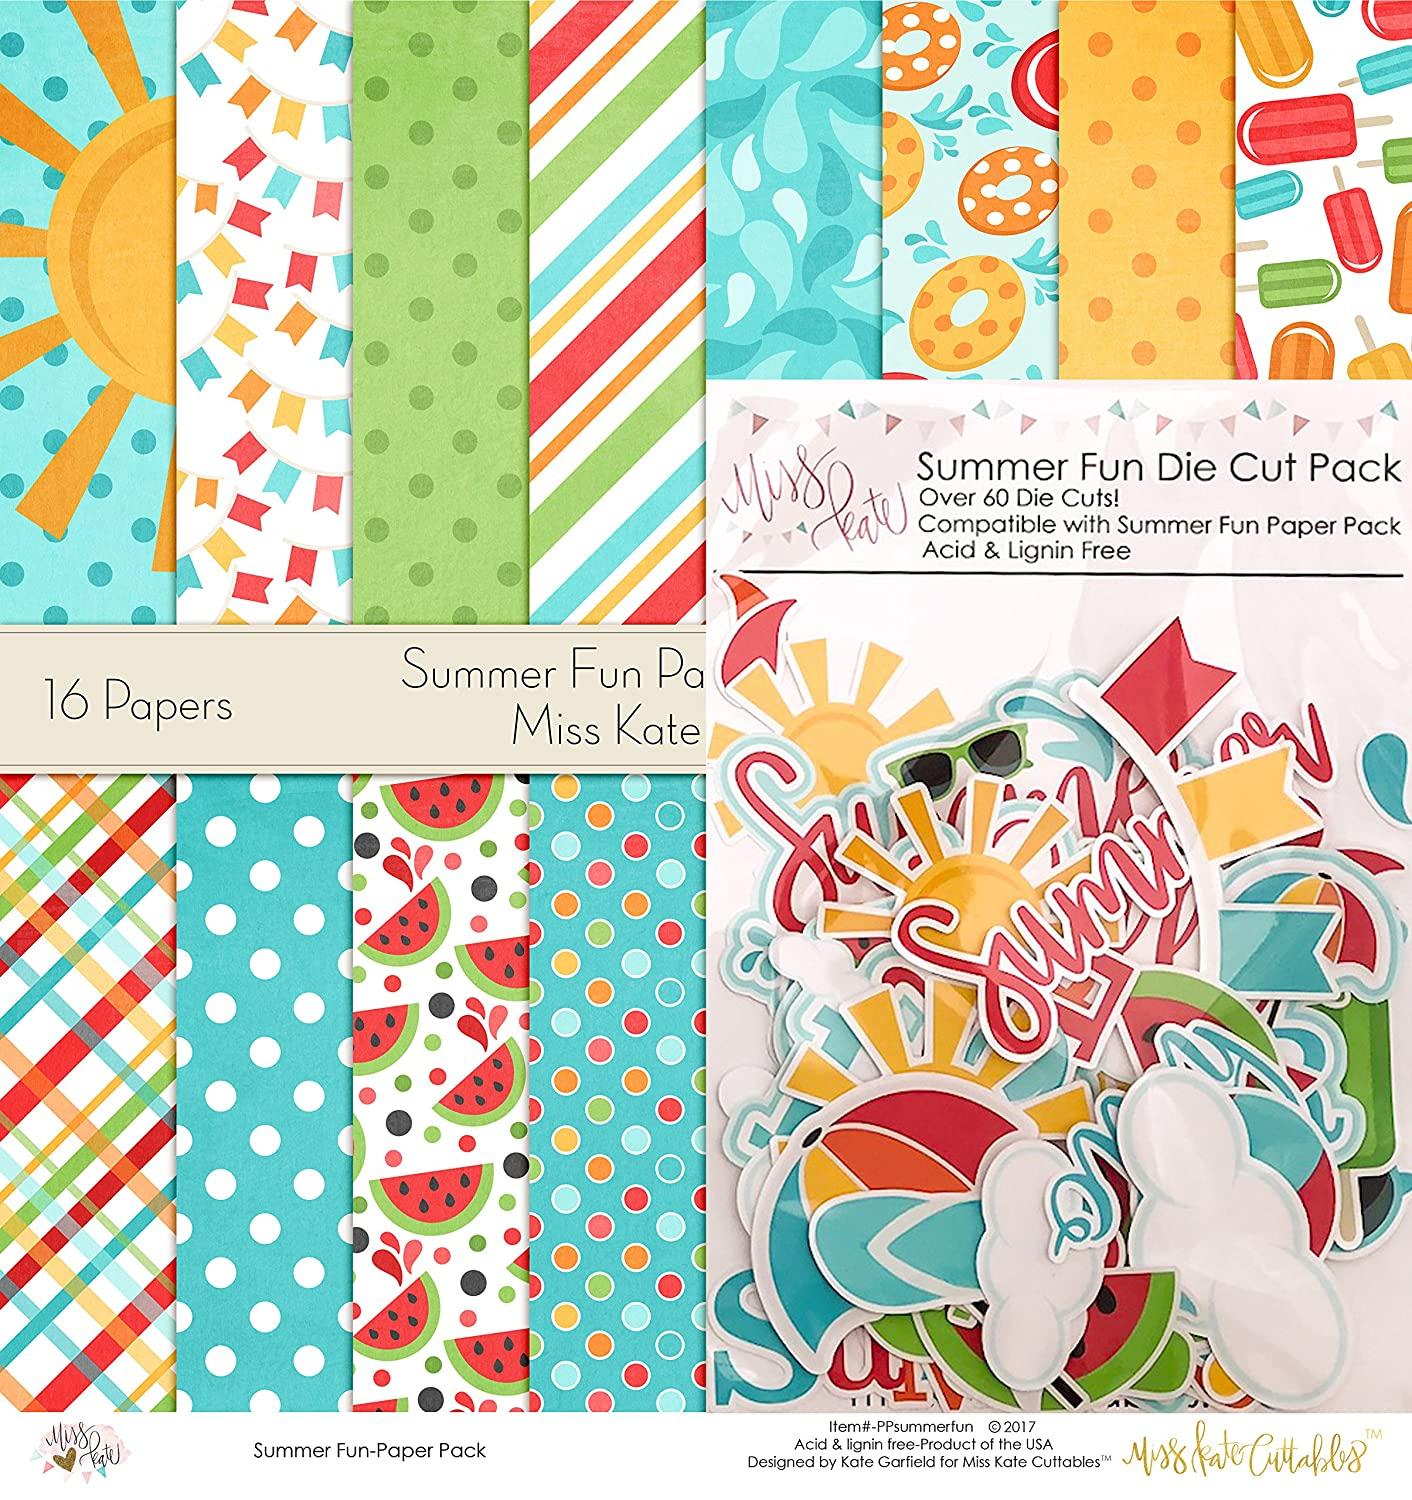 Summer Fun Set - Matching Die Cuts & Paper Kit by Miss Kate Cuttables